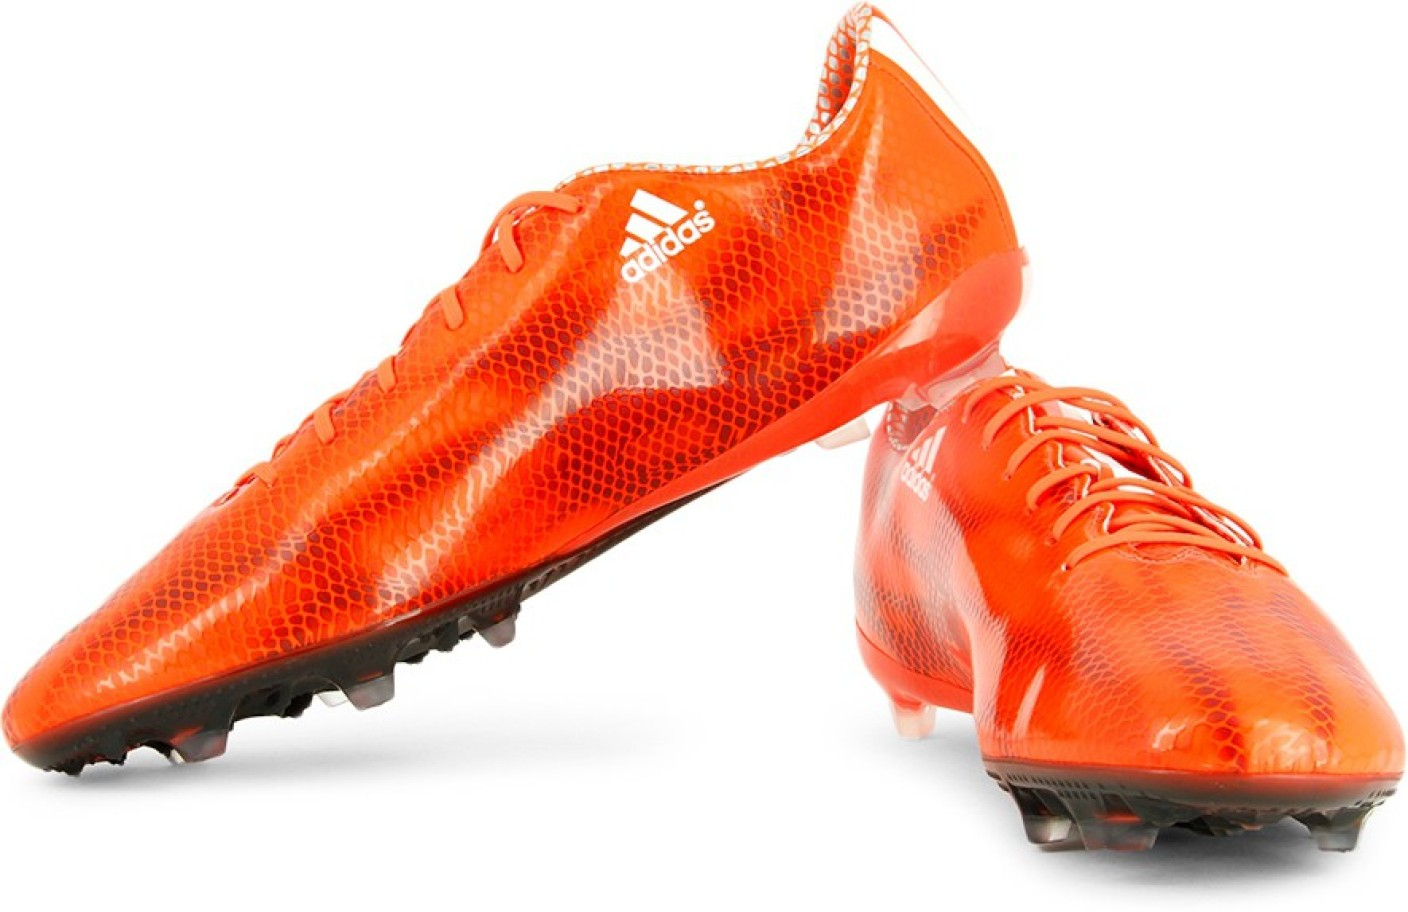 Buy Football Shoes Without Studs